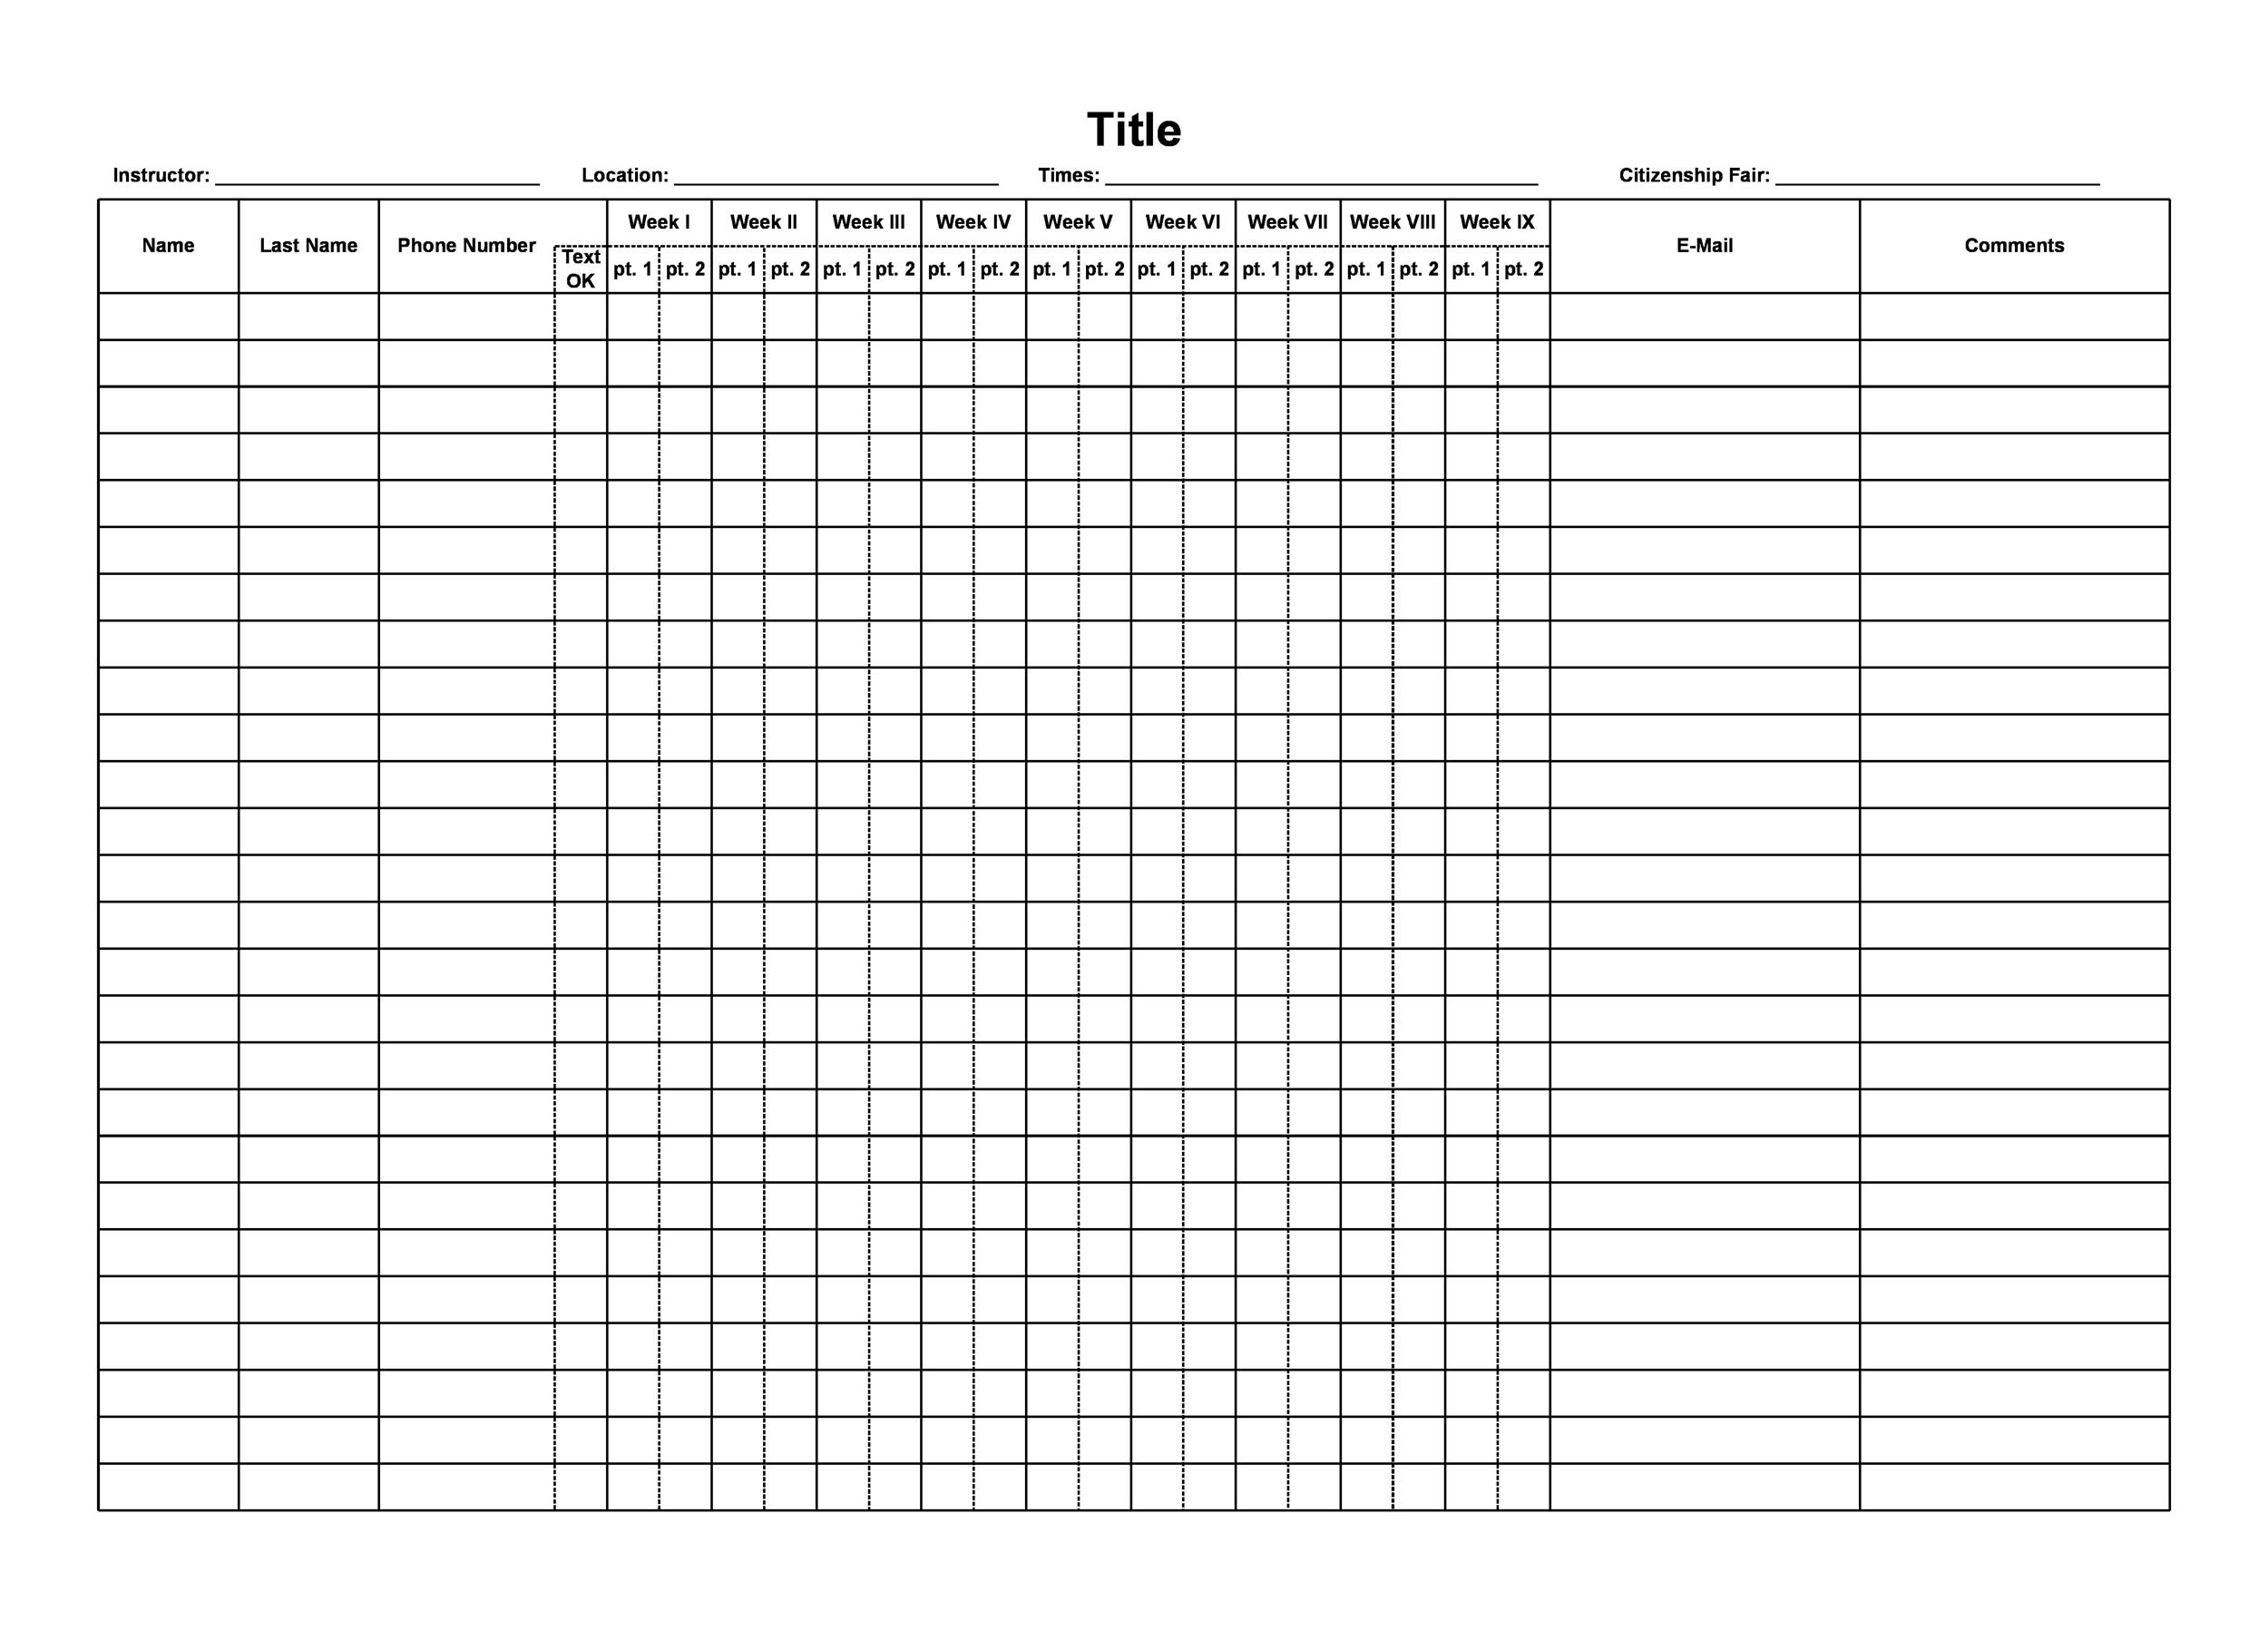 image about Attendance Sheet Printable named 38 Free of charge Printable Attendance Sheet Templates